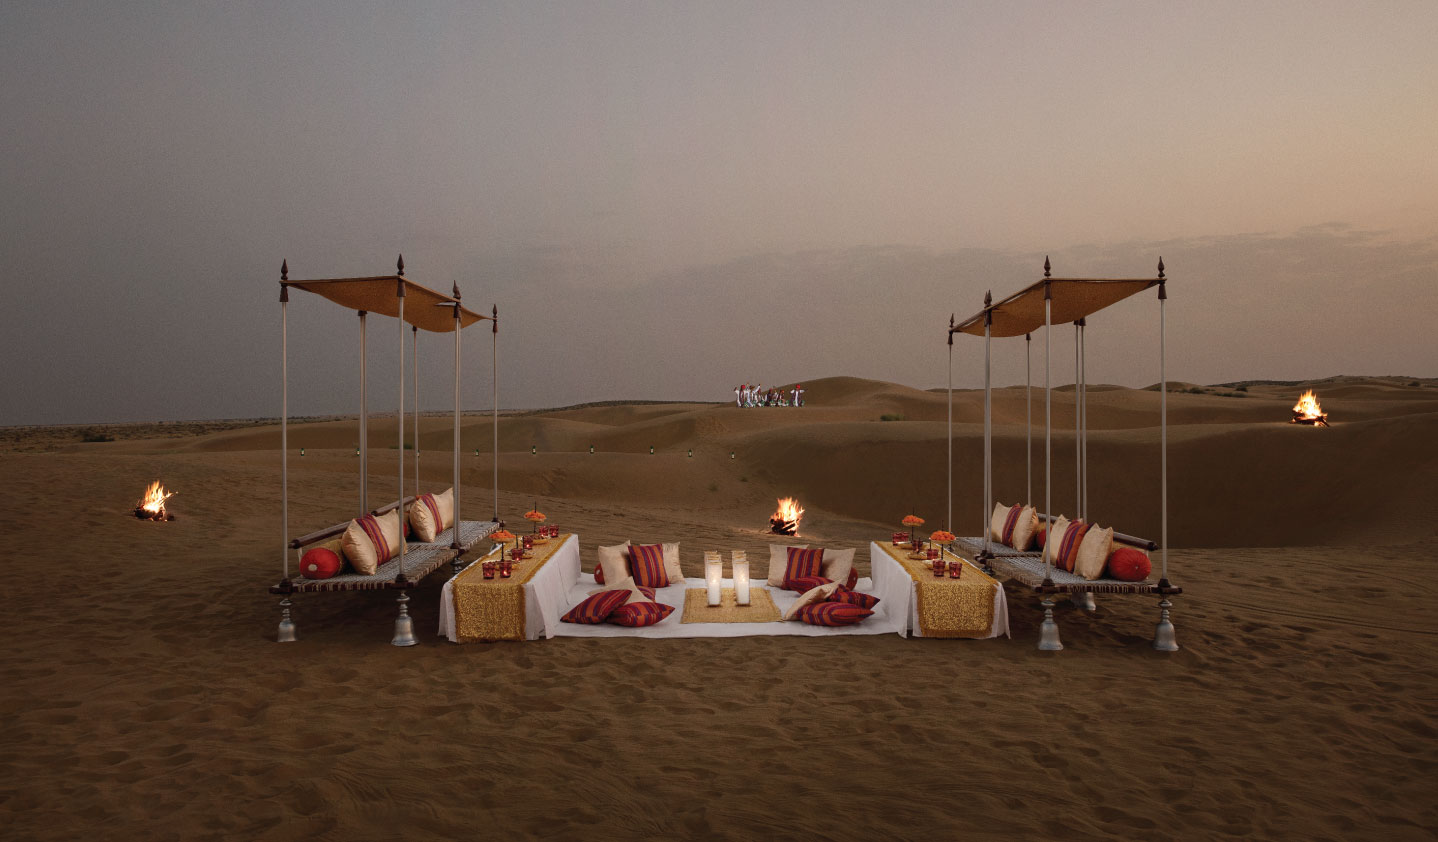 Dinner-on-the-dunes-Jaisalmer